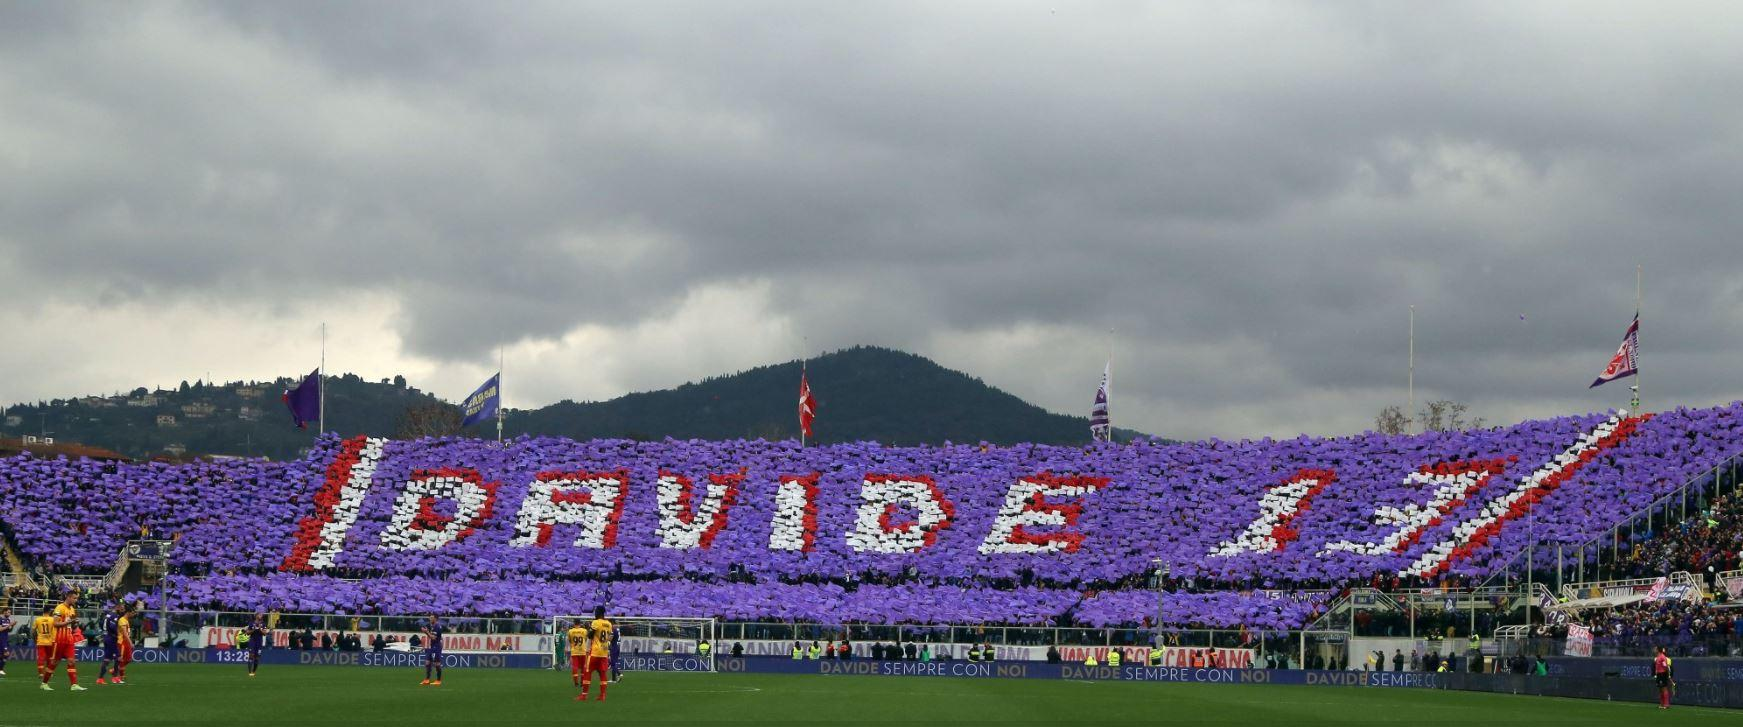 Fans pay tribute to their hero